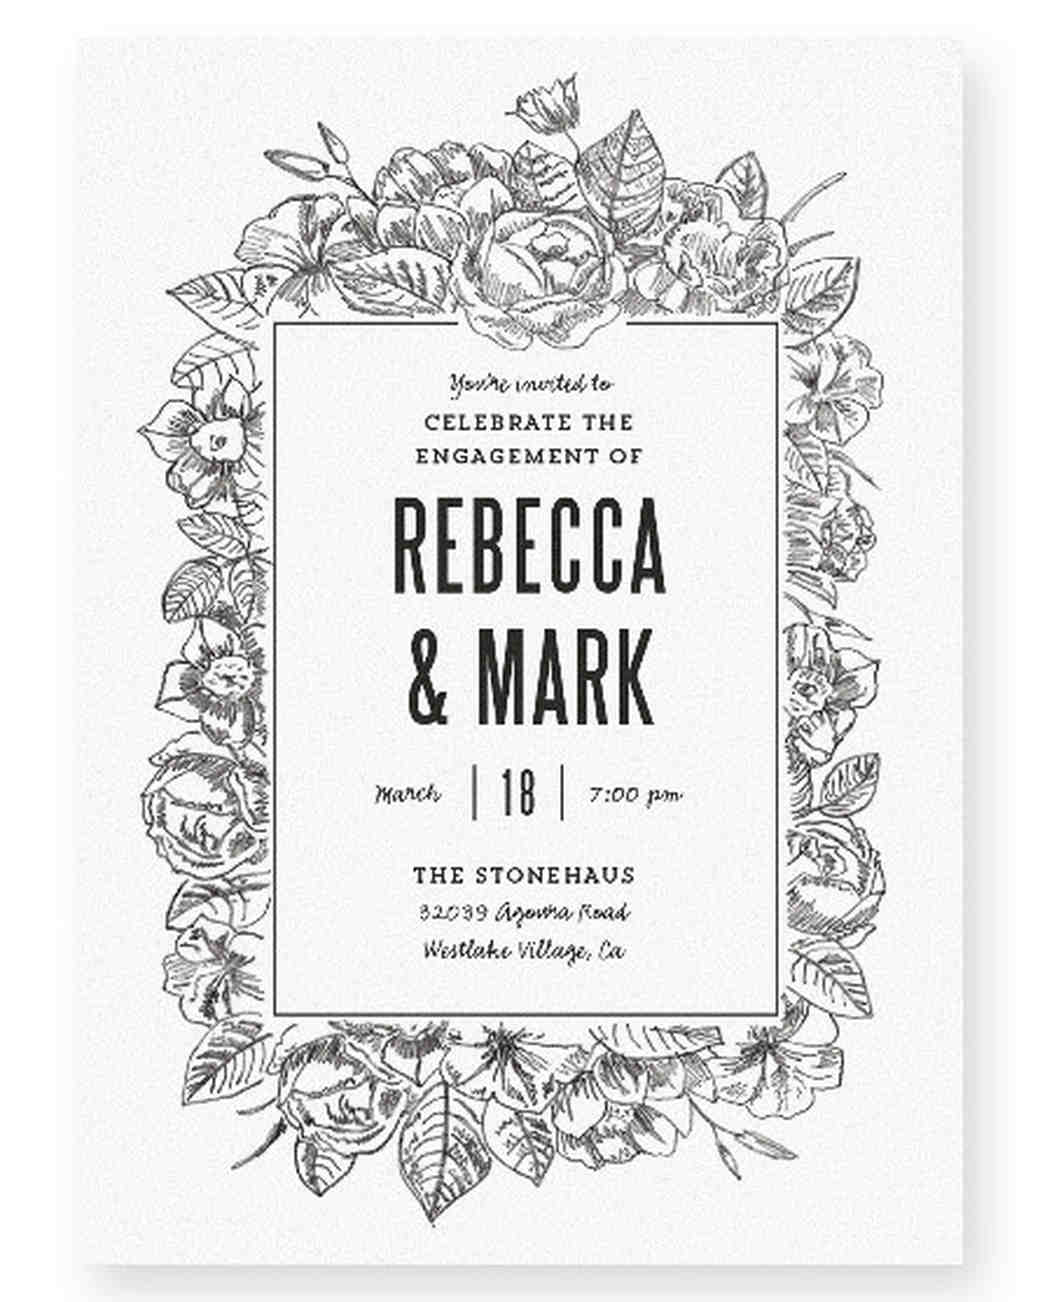 paperless engagement party invite floral black white